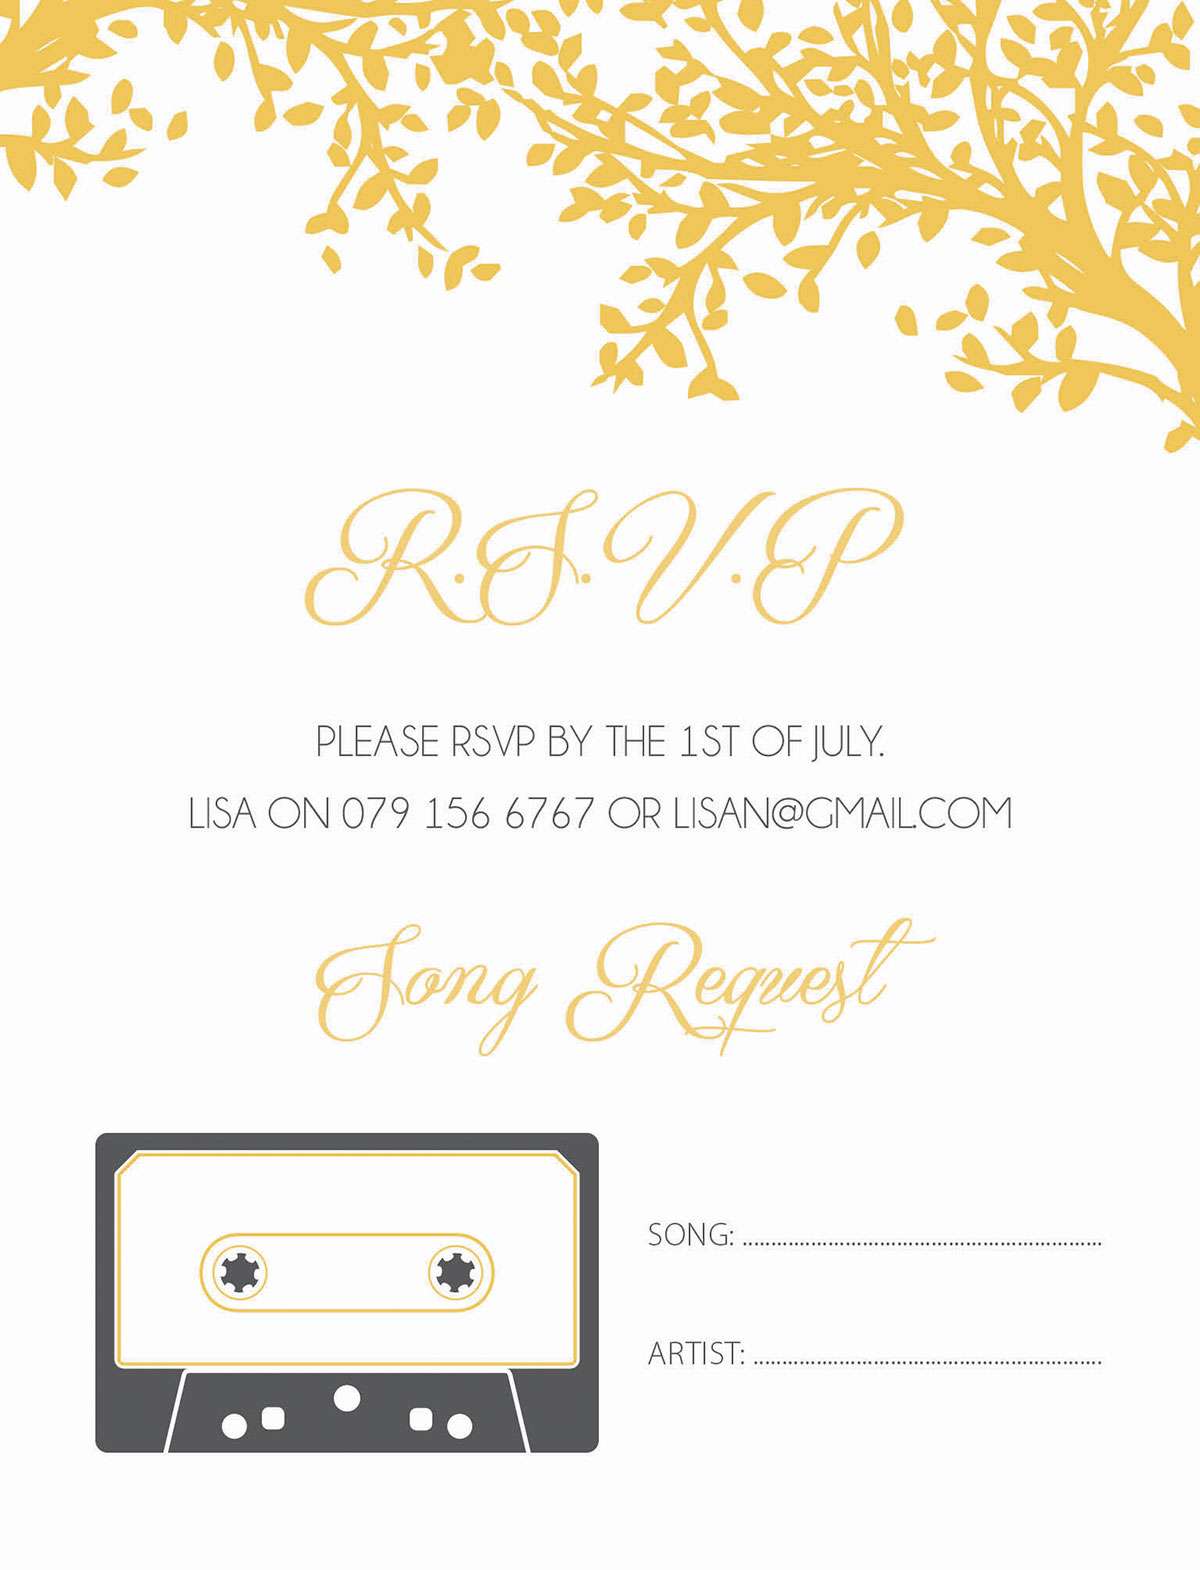 RSVP for wedding, song request